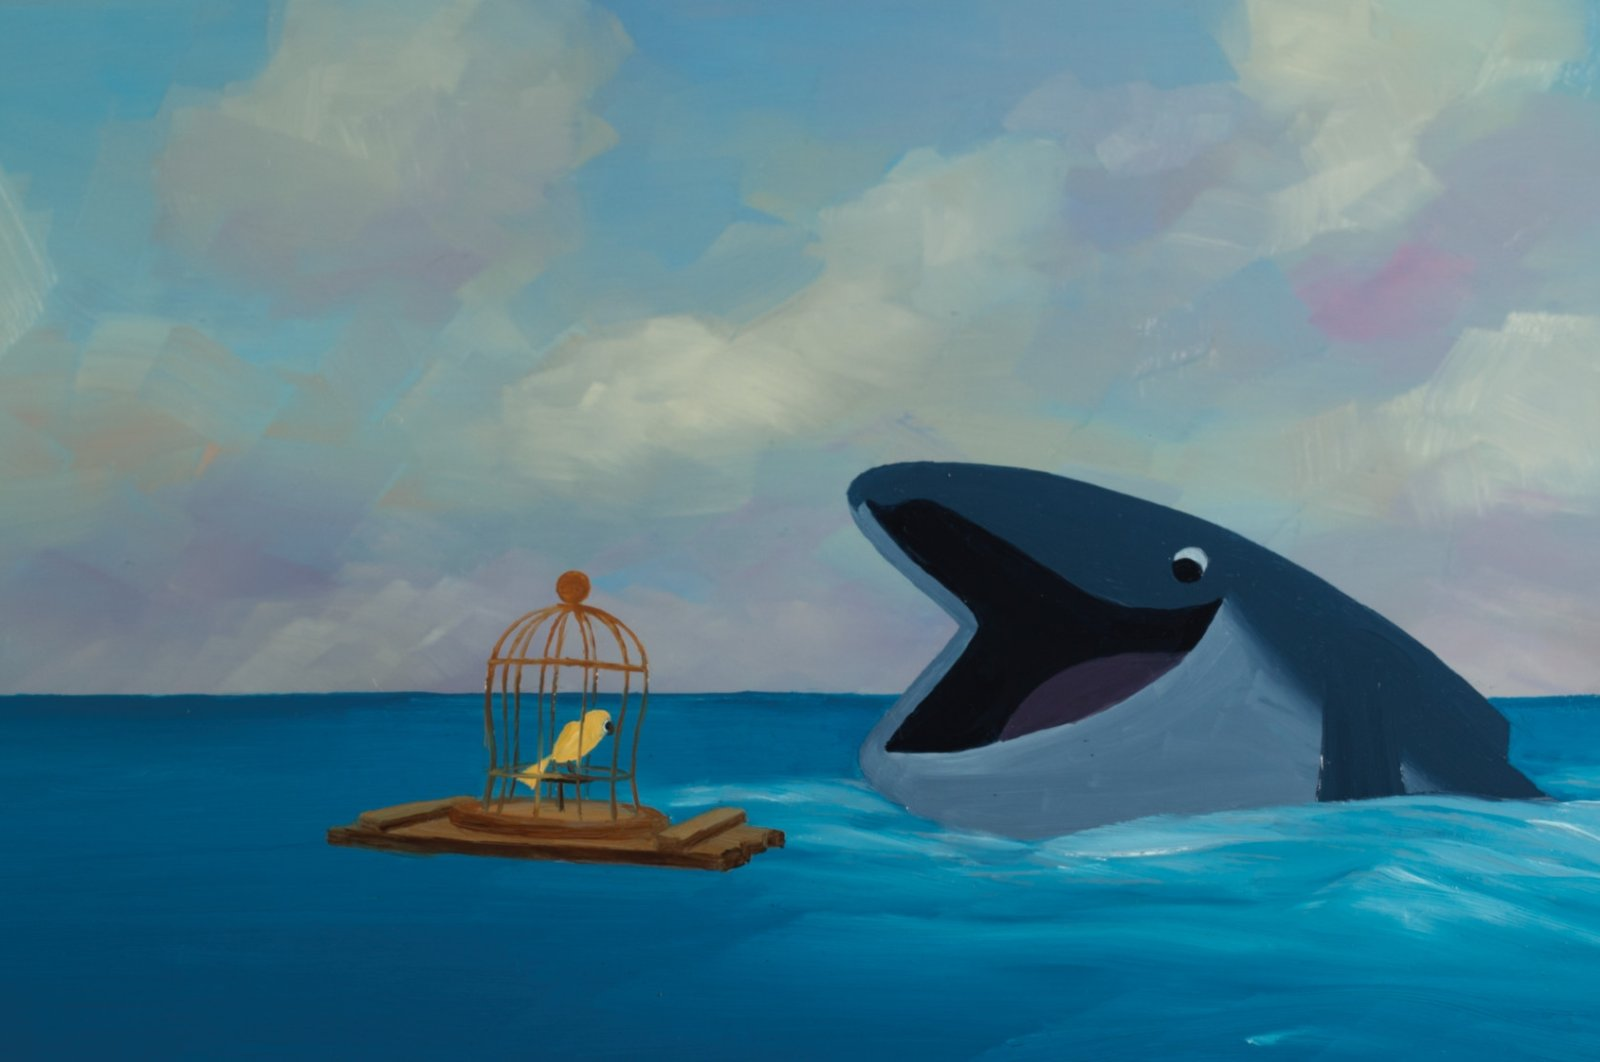 """Still shot from """"The Bird and the Whale"""" by Carol Freeman, one of the movies to be screen at the """"For Children"""" selection of the festival."""